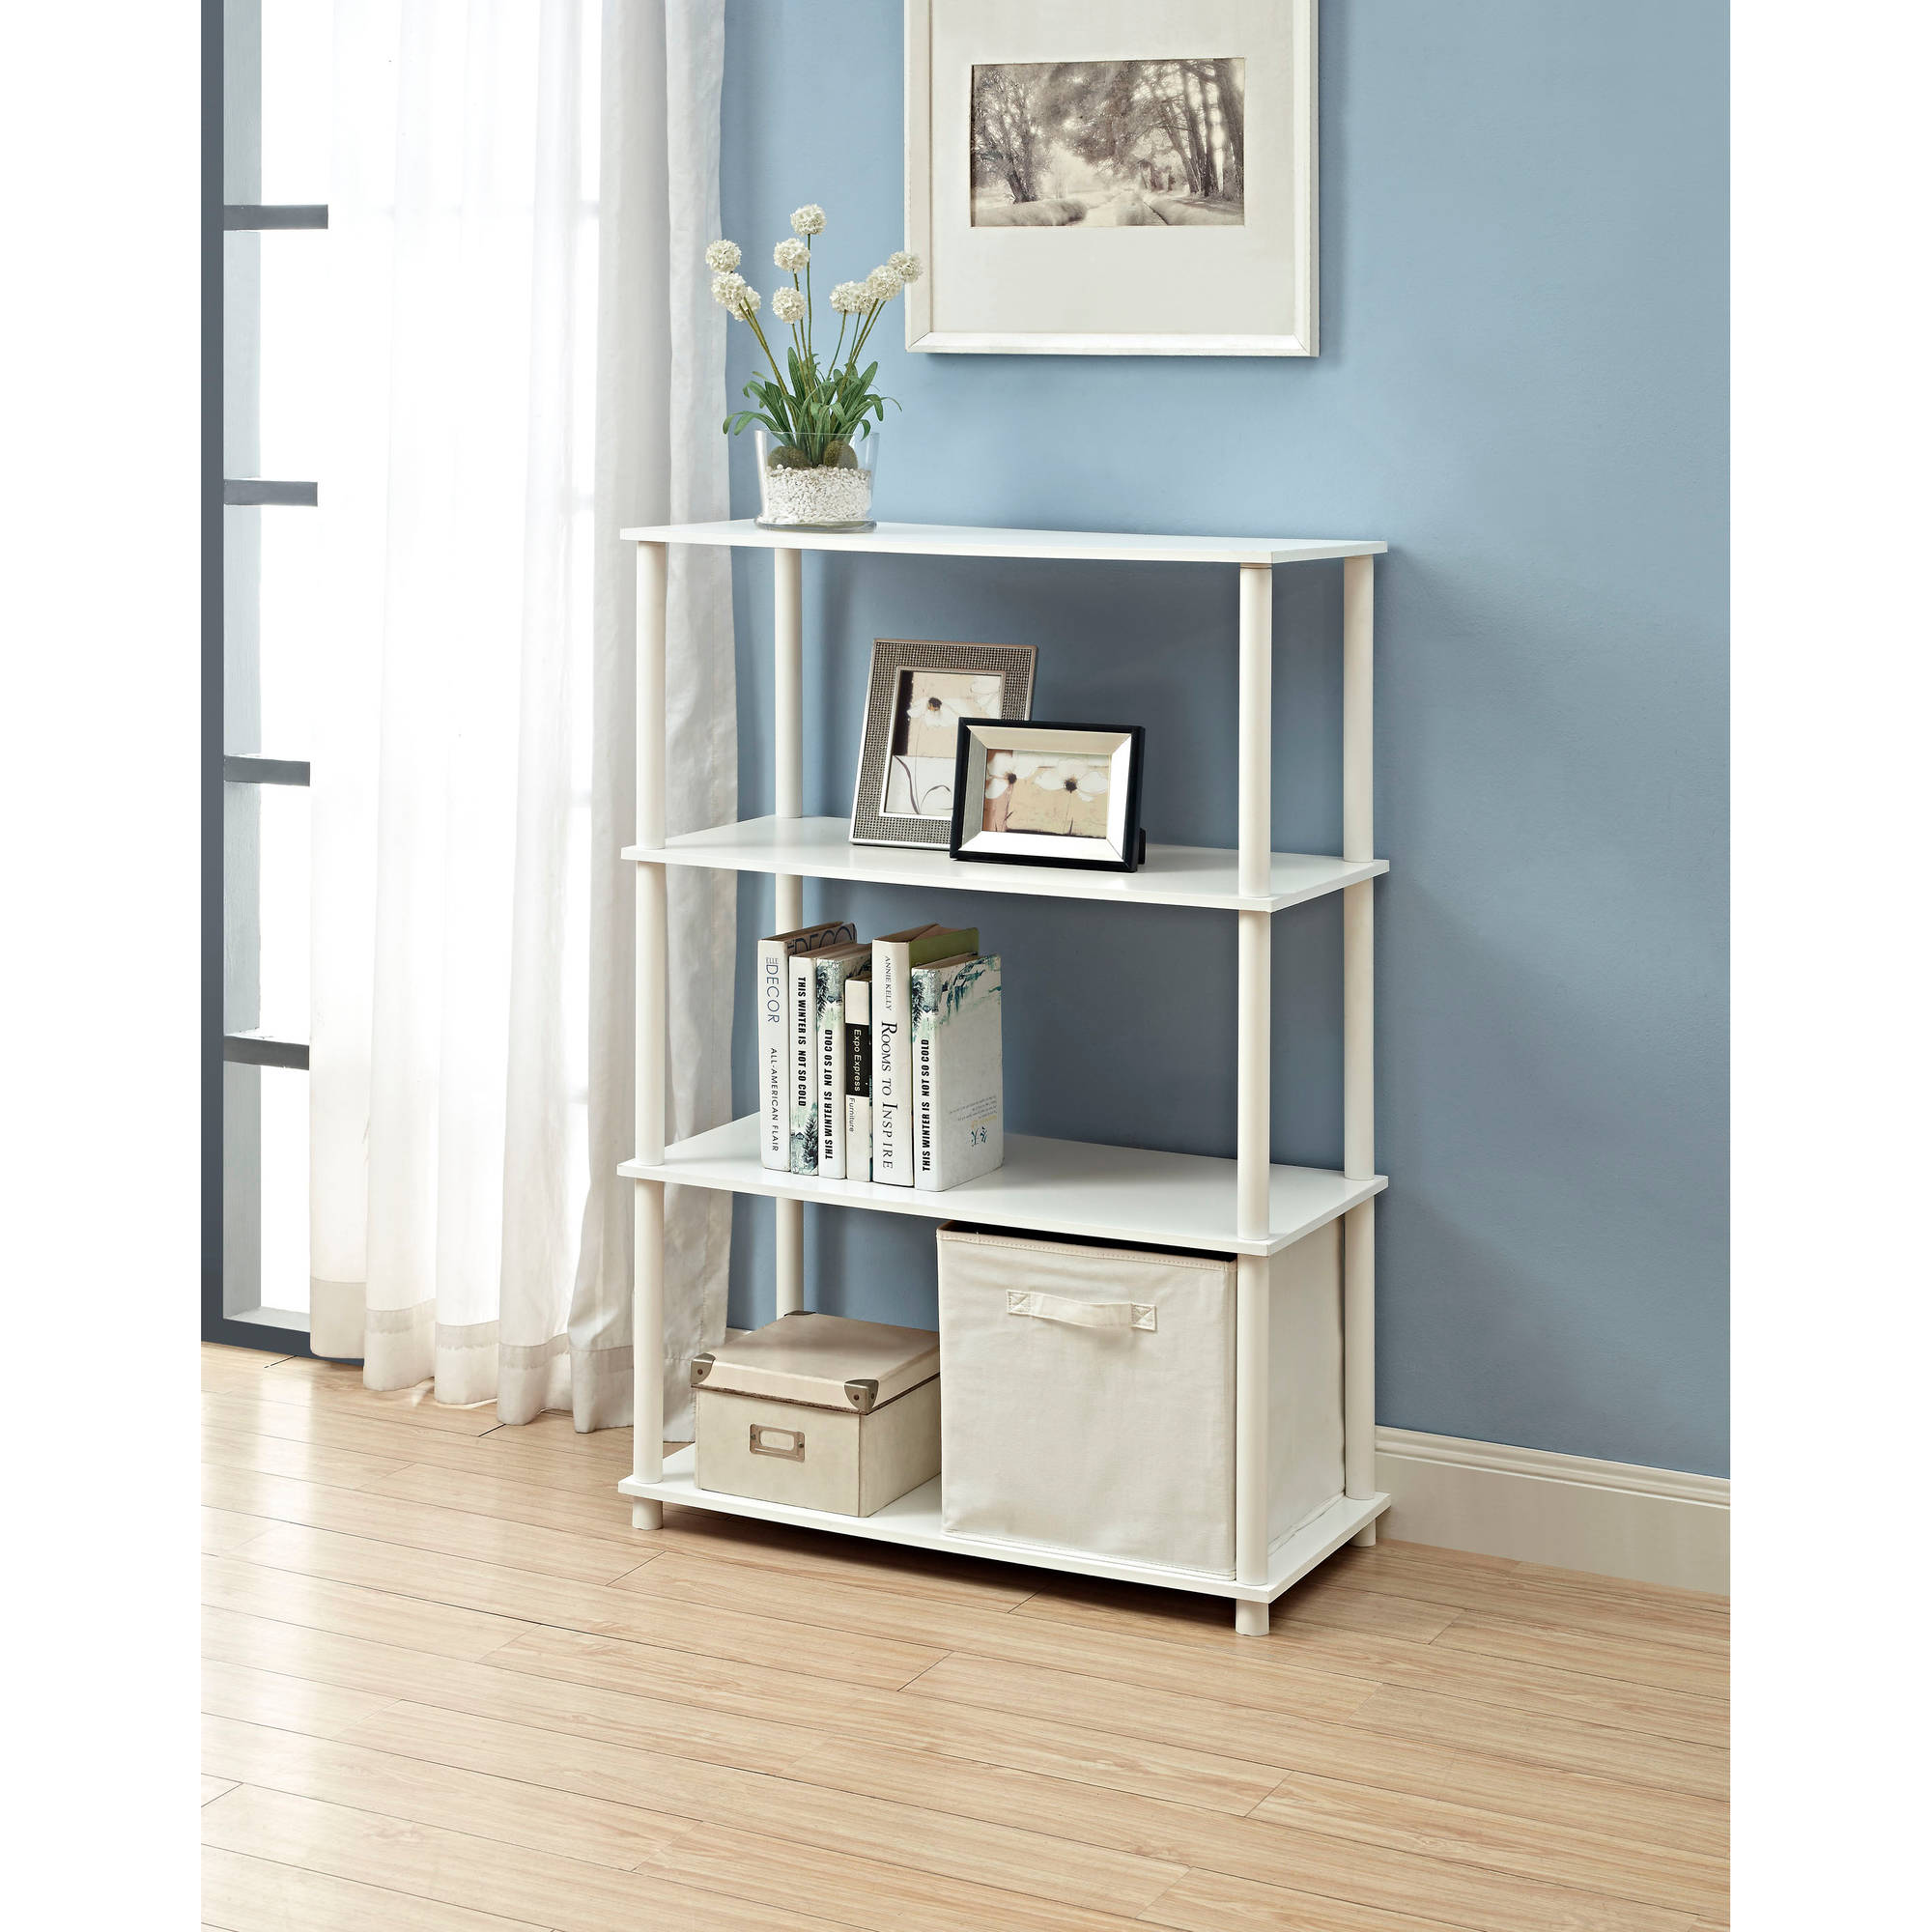 Mainstays No Tools 6-Cube Storage Shelf, Multiple Colors